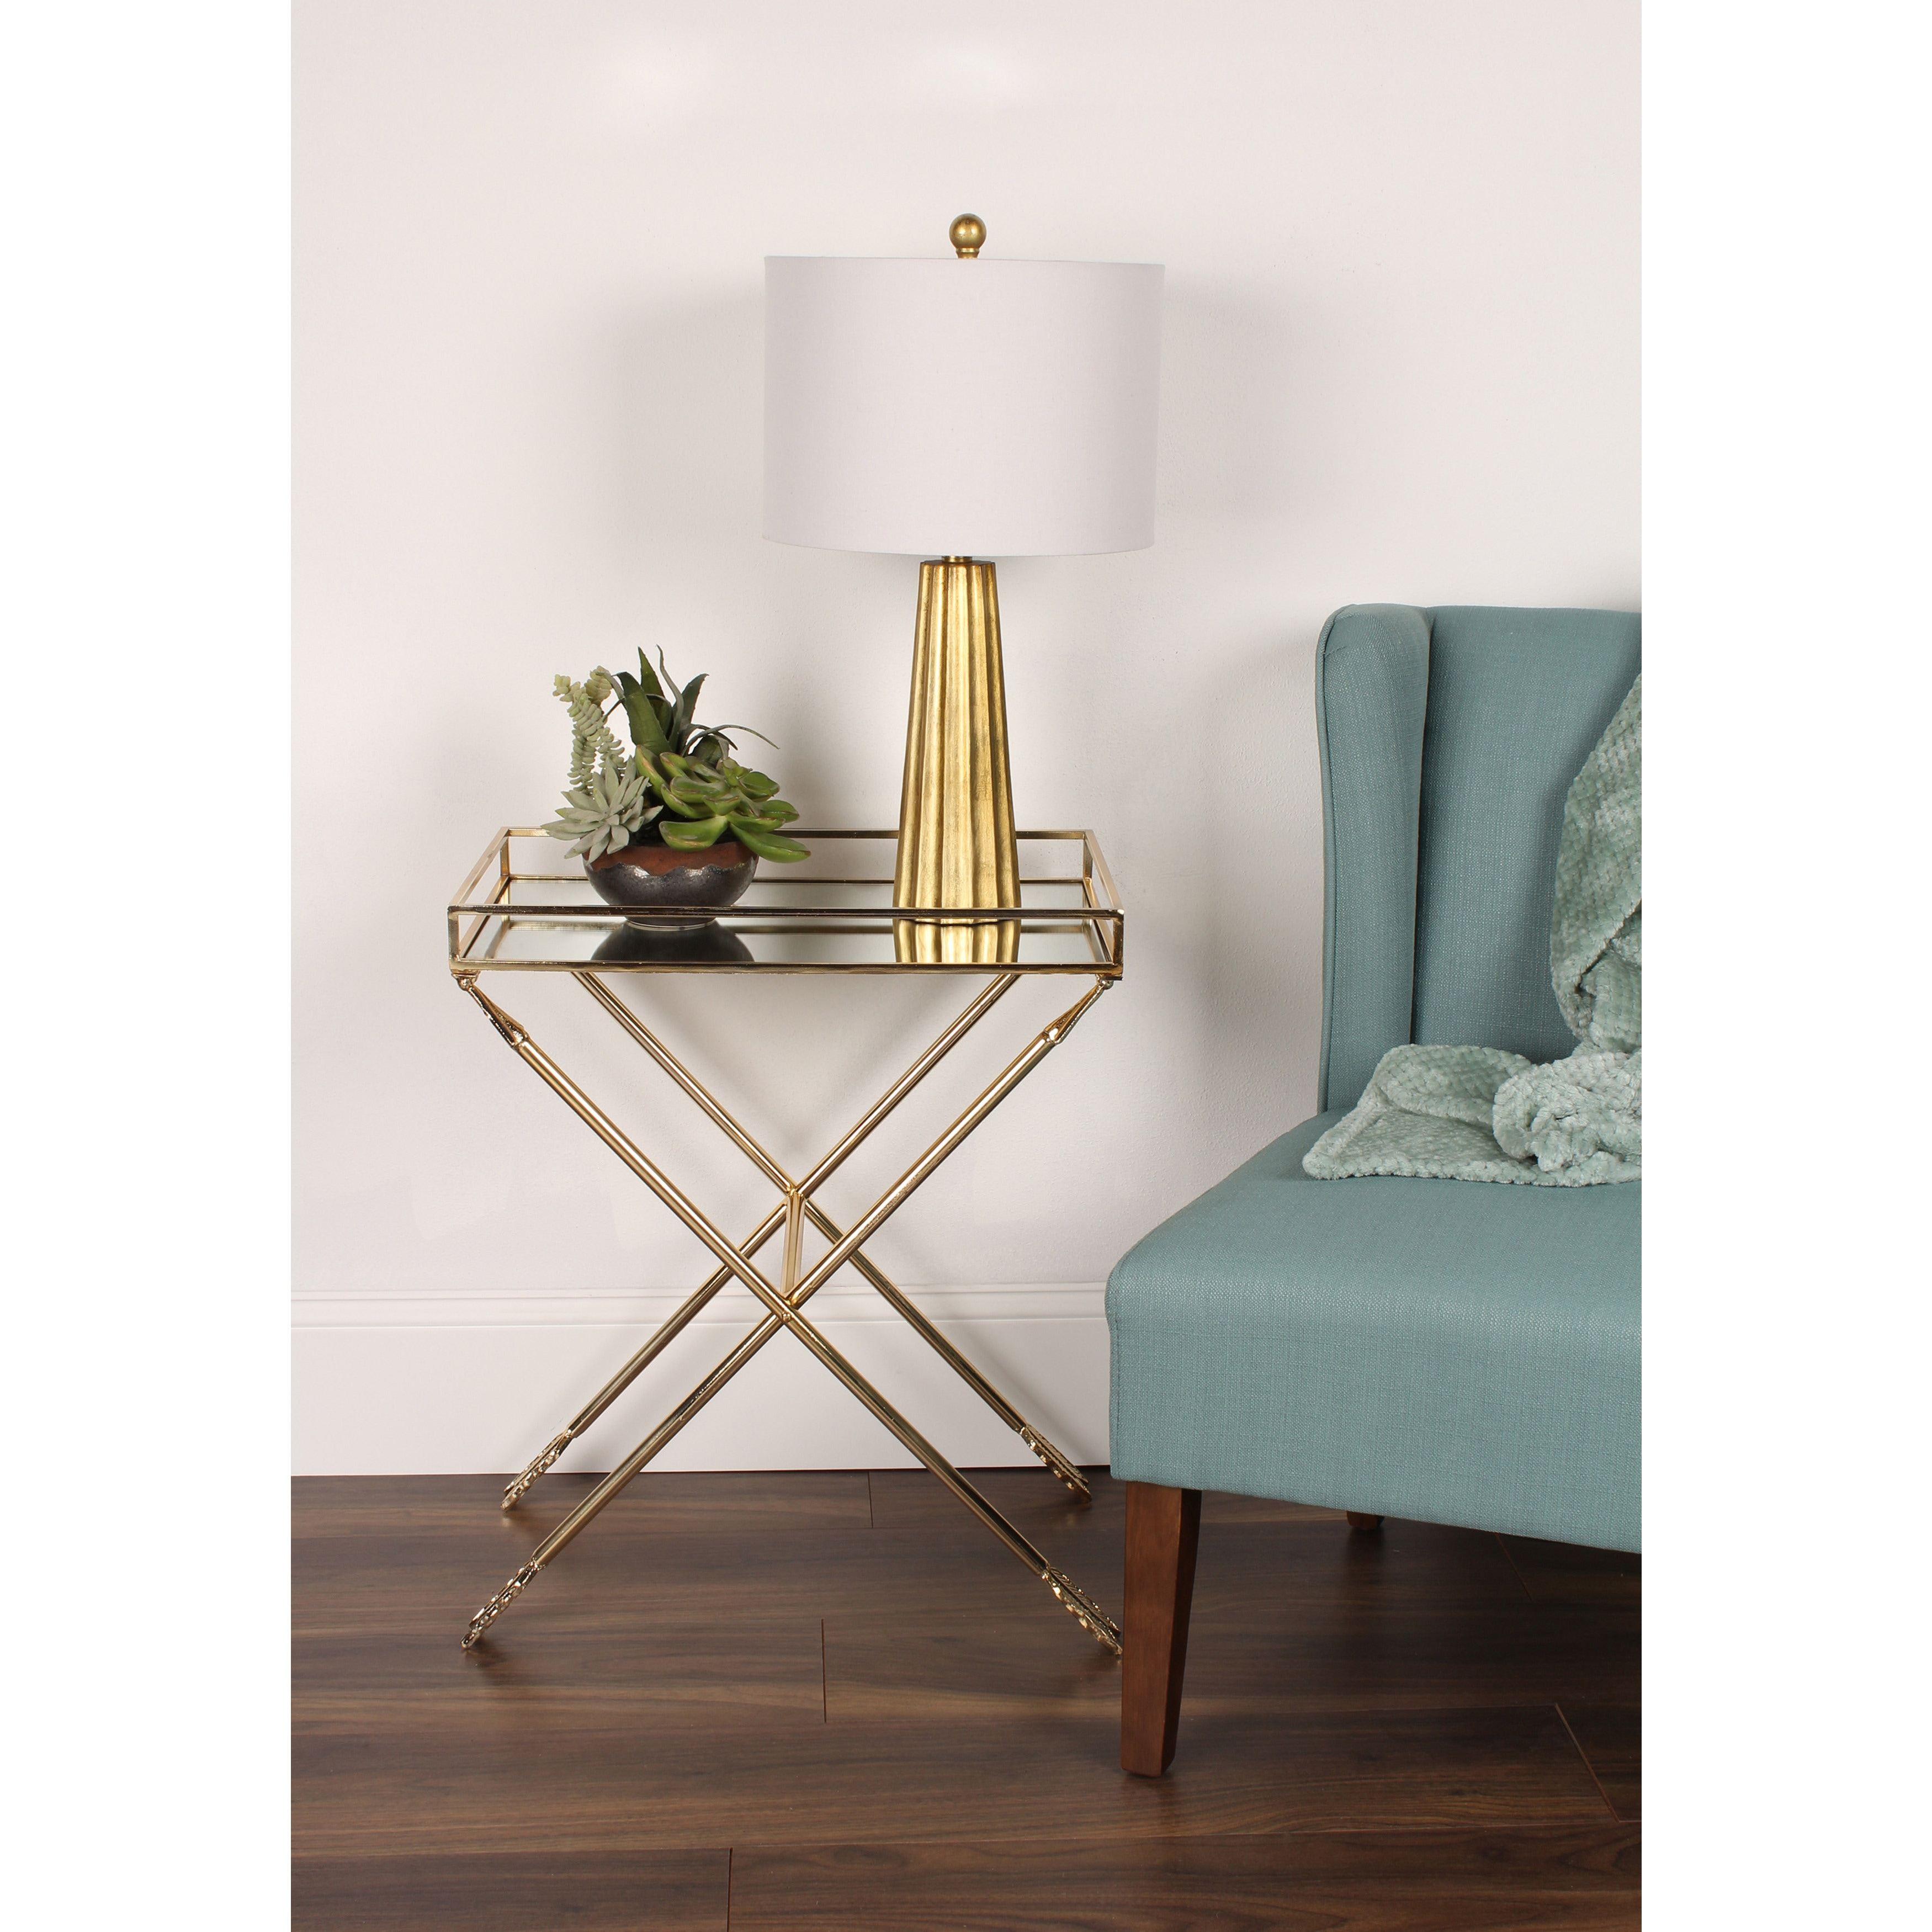 porch den alamo heights viesca arrow metal accent table with tray amp mirrored top legs for tables clamp lamp antique side styles bedside ideas counter height dining set smoked